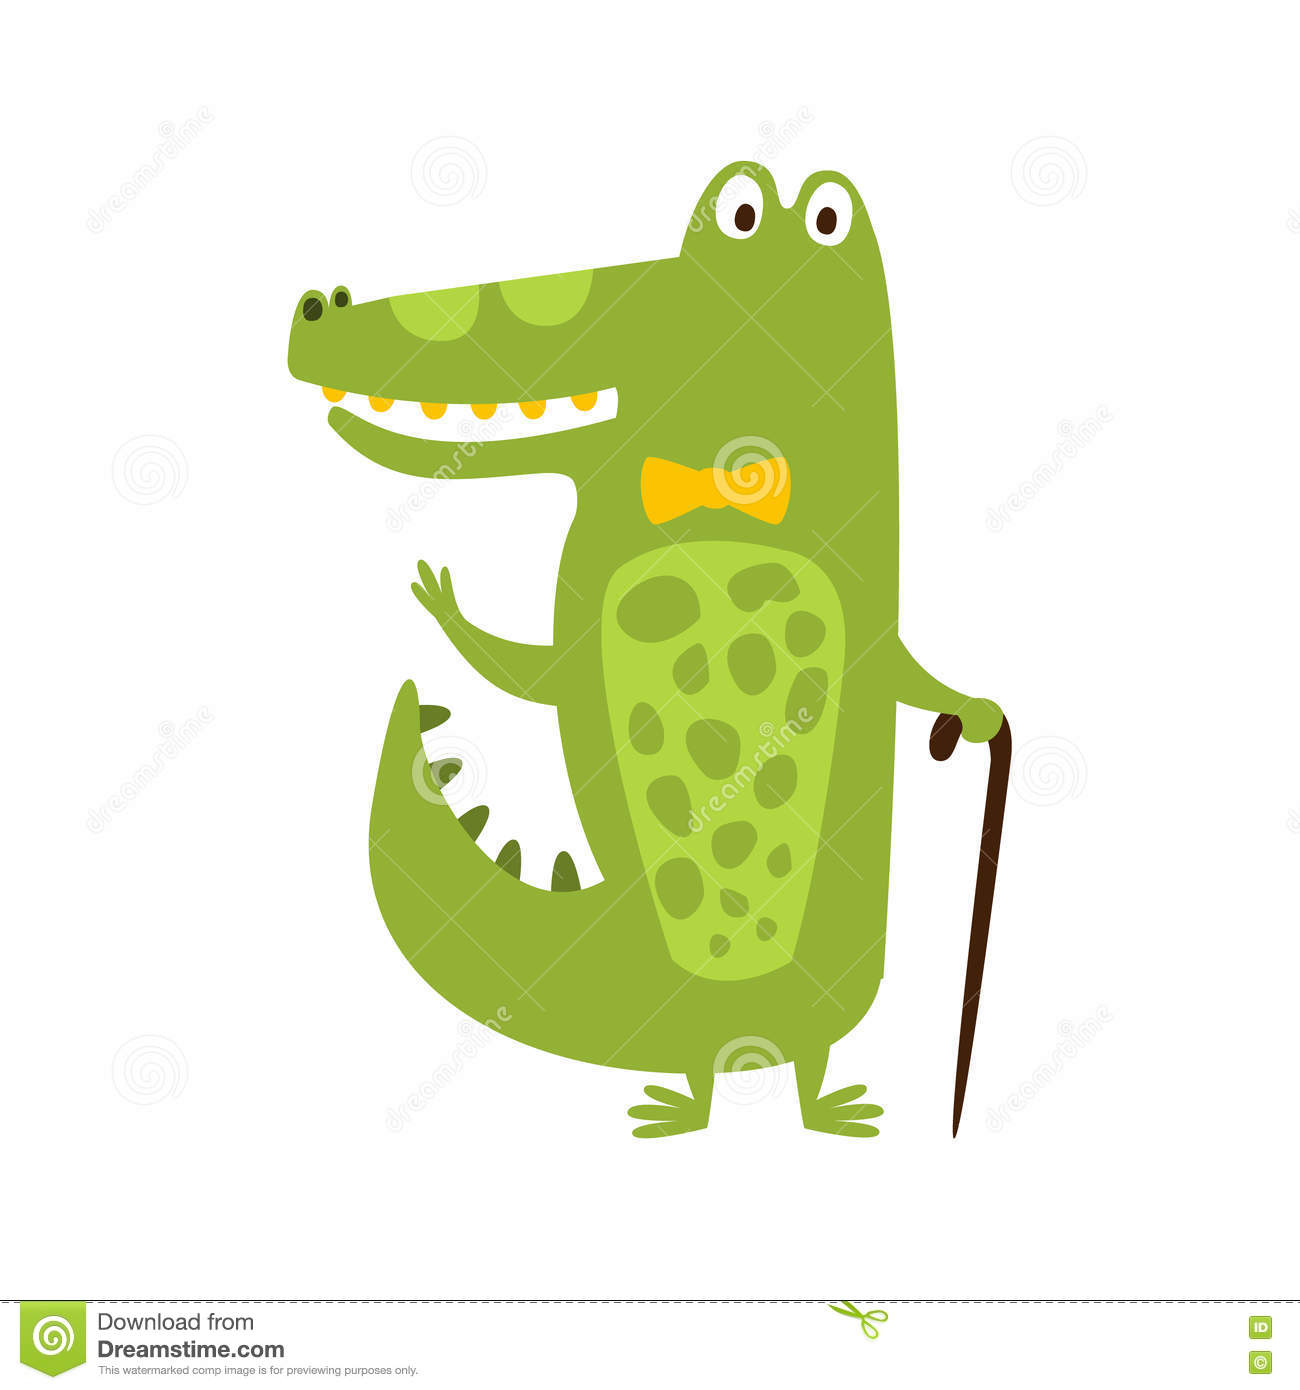 Crocodile With Bow Tie And Cane Flat Cartoon Green Friendly Reptile Animal Character Drawing